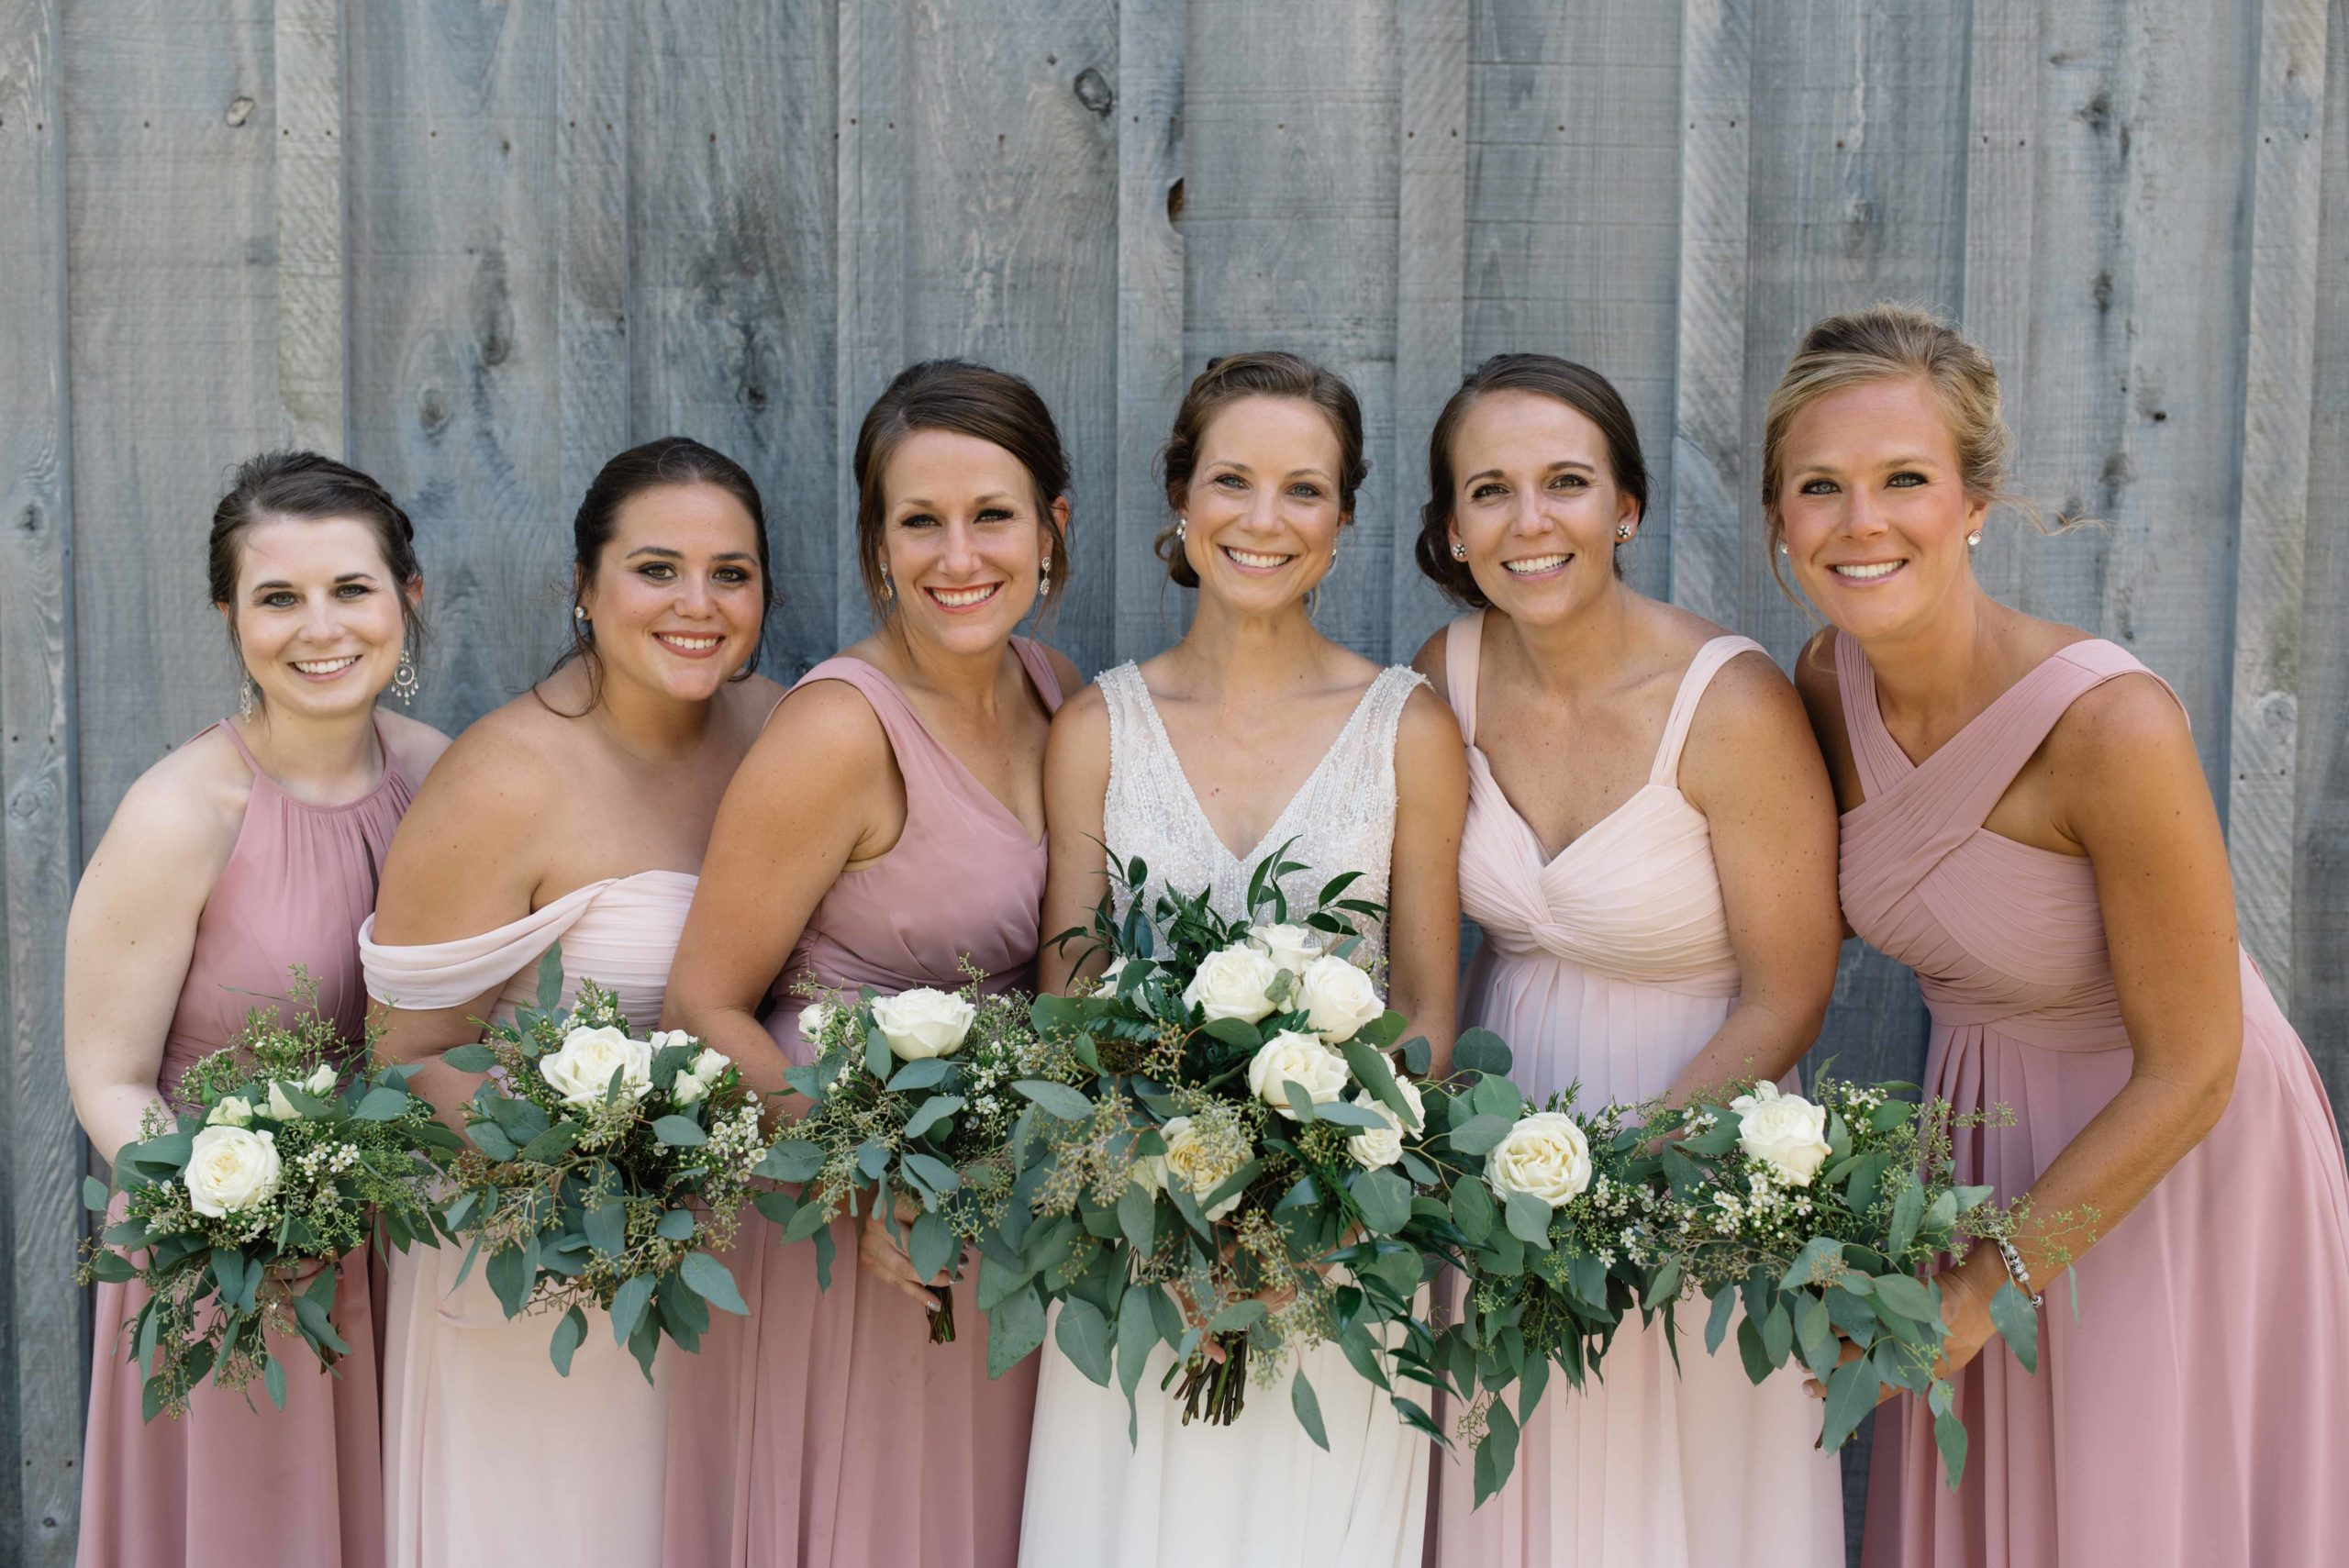 bridesmaid in blush pink dresses and gray wood barn schafer century barn wedding venue